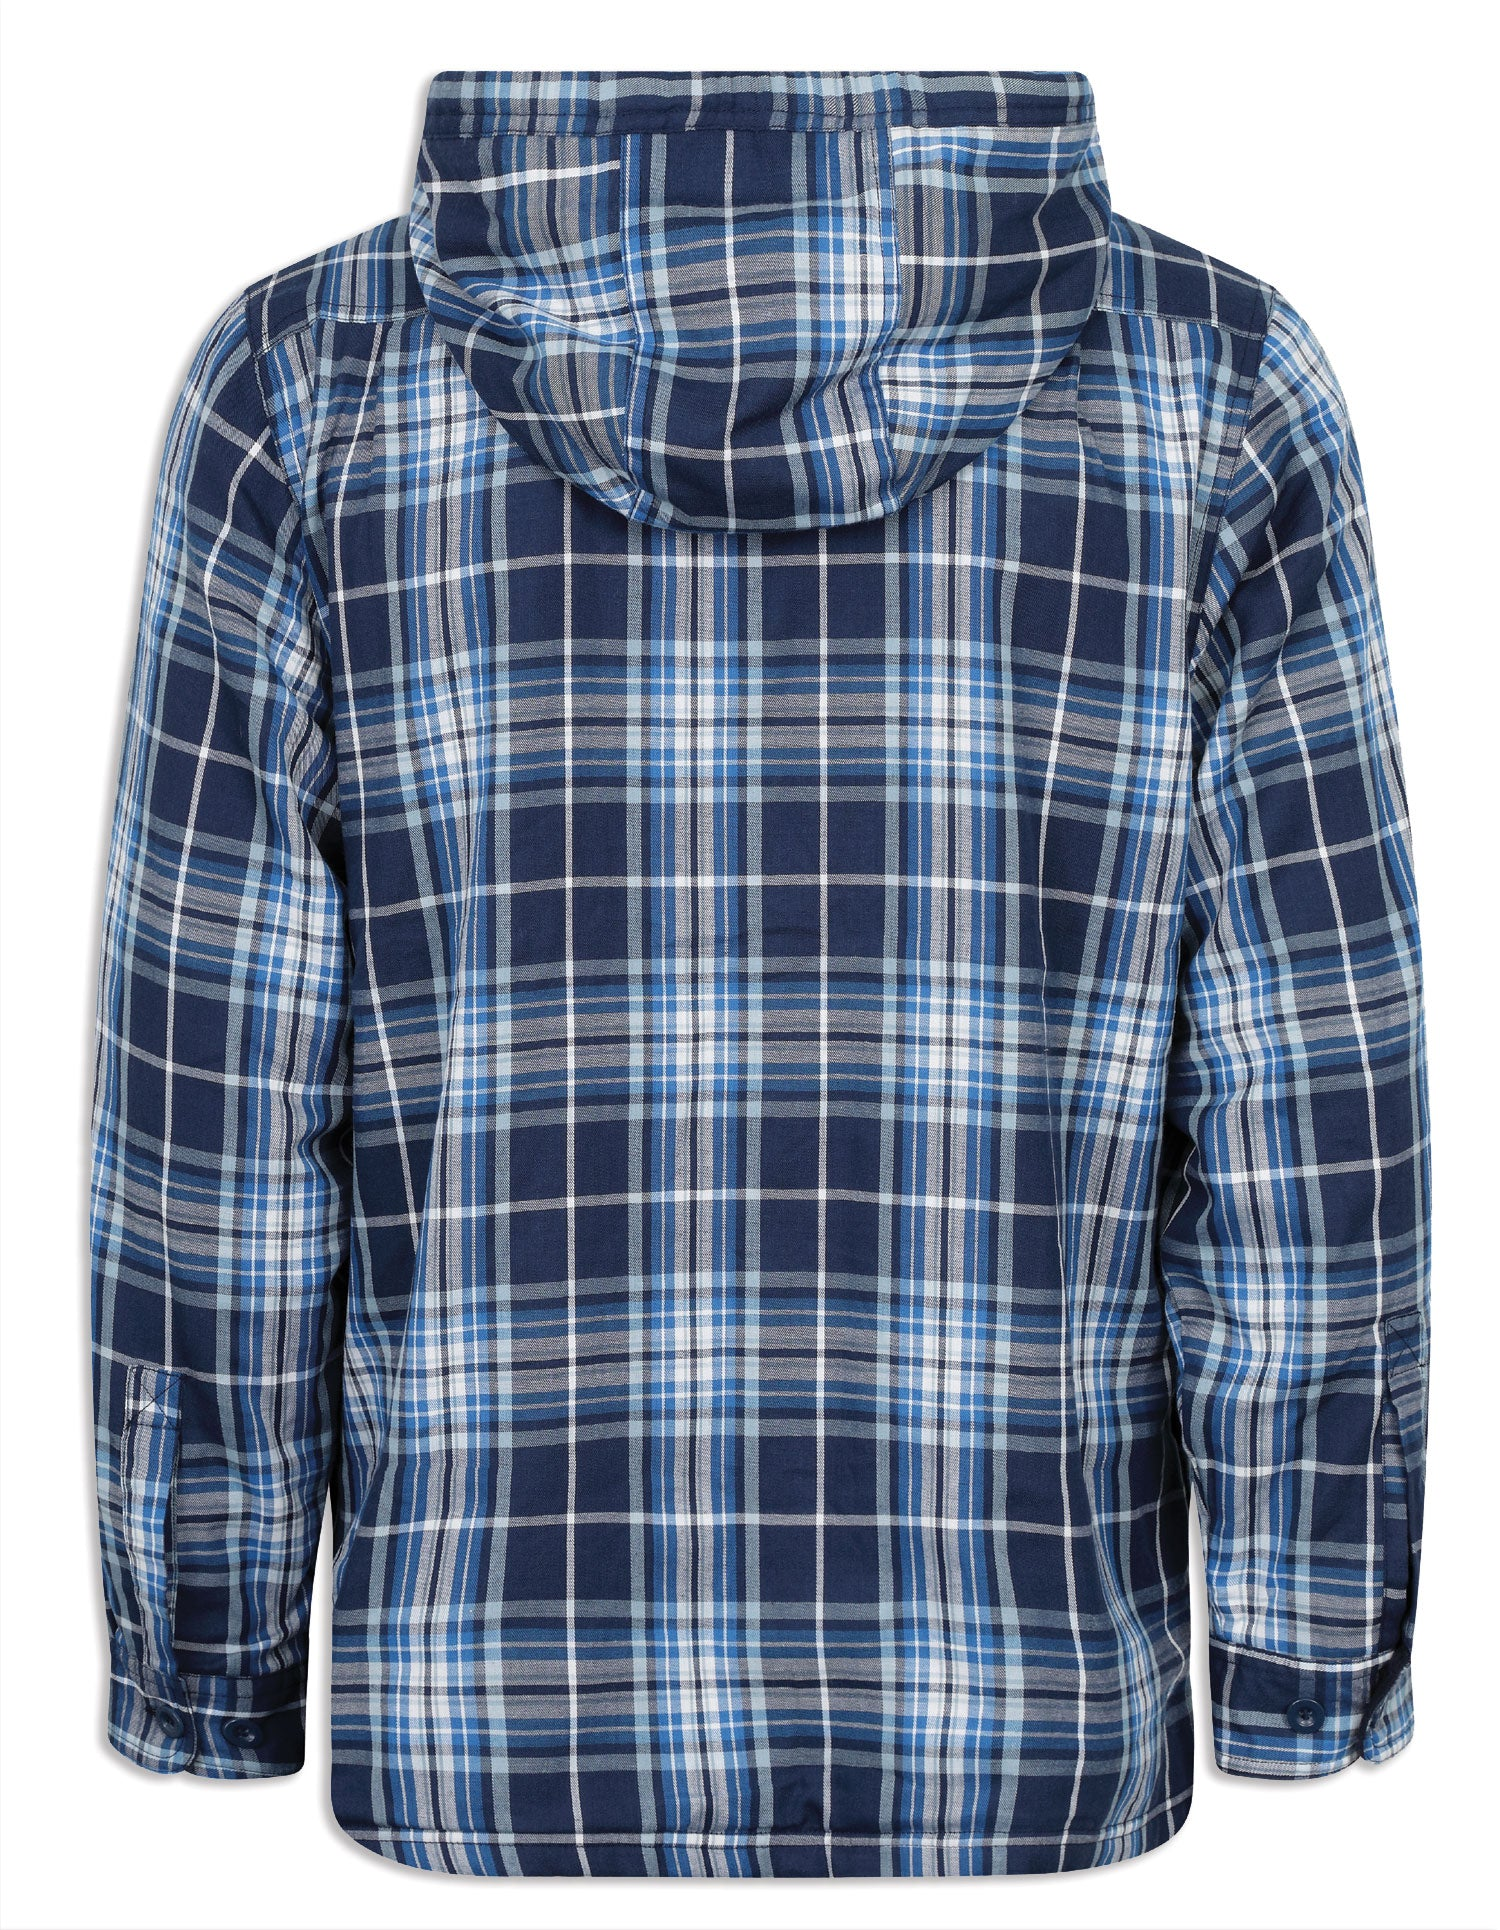 Champion Blue Tartan Check Merrow Micro Fleece Lined Hoodie